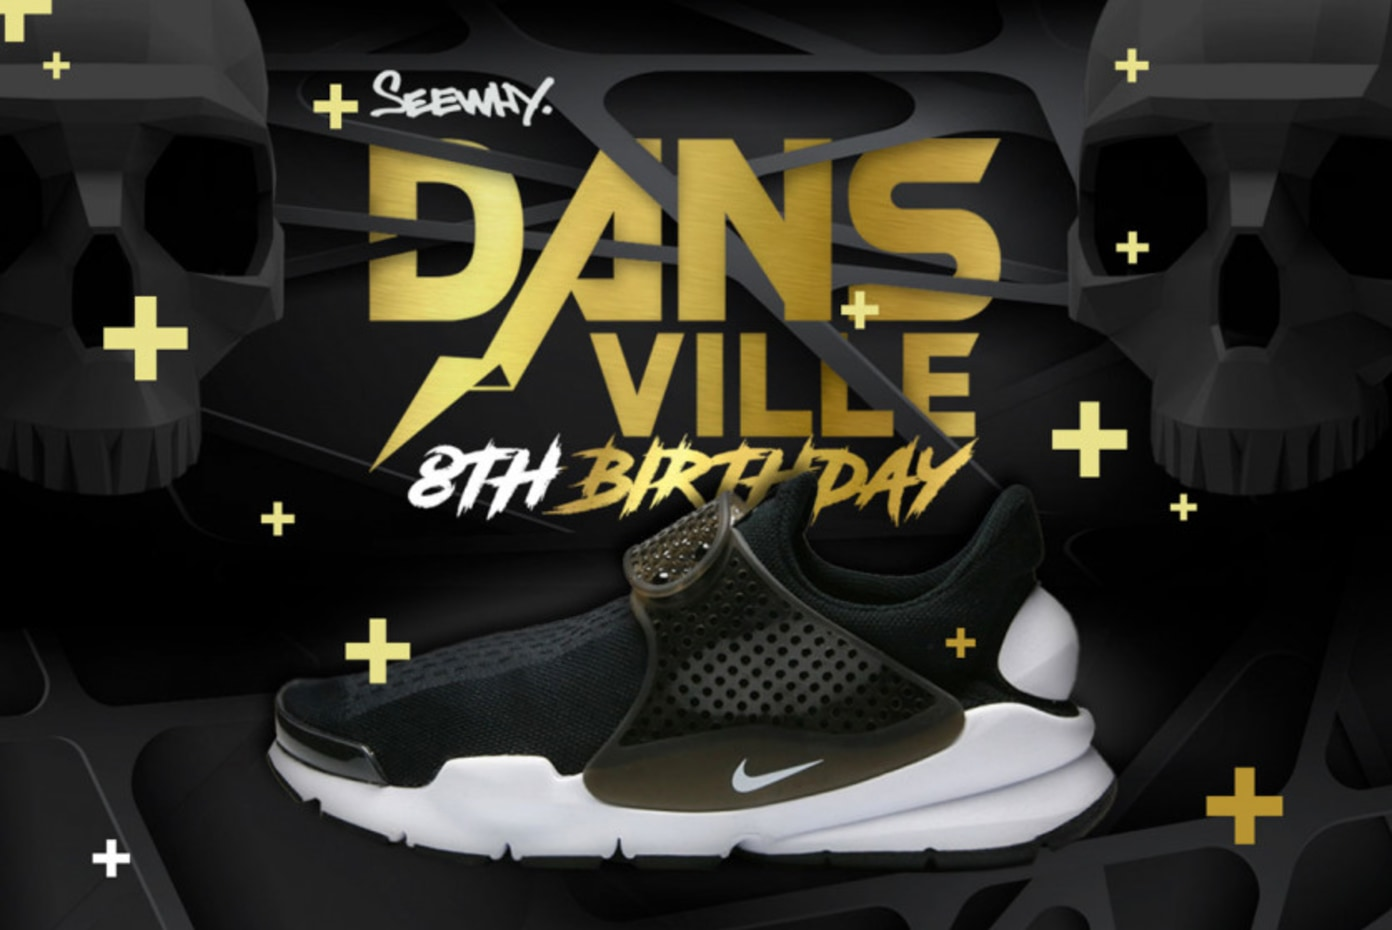 Dansville - 8th Birthday Competition